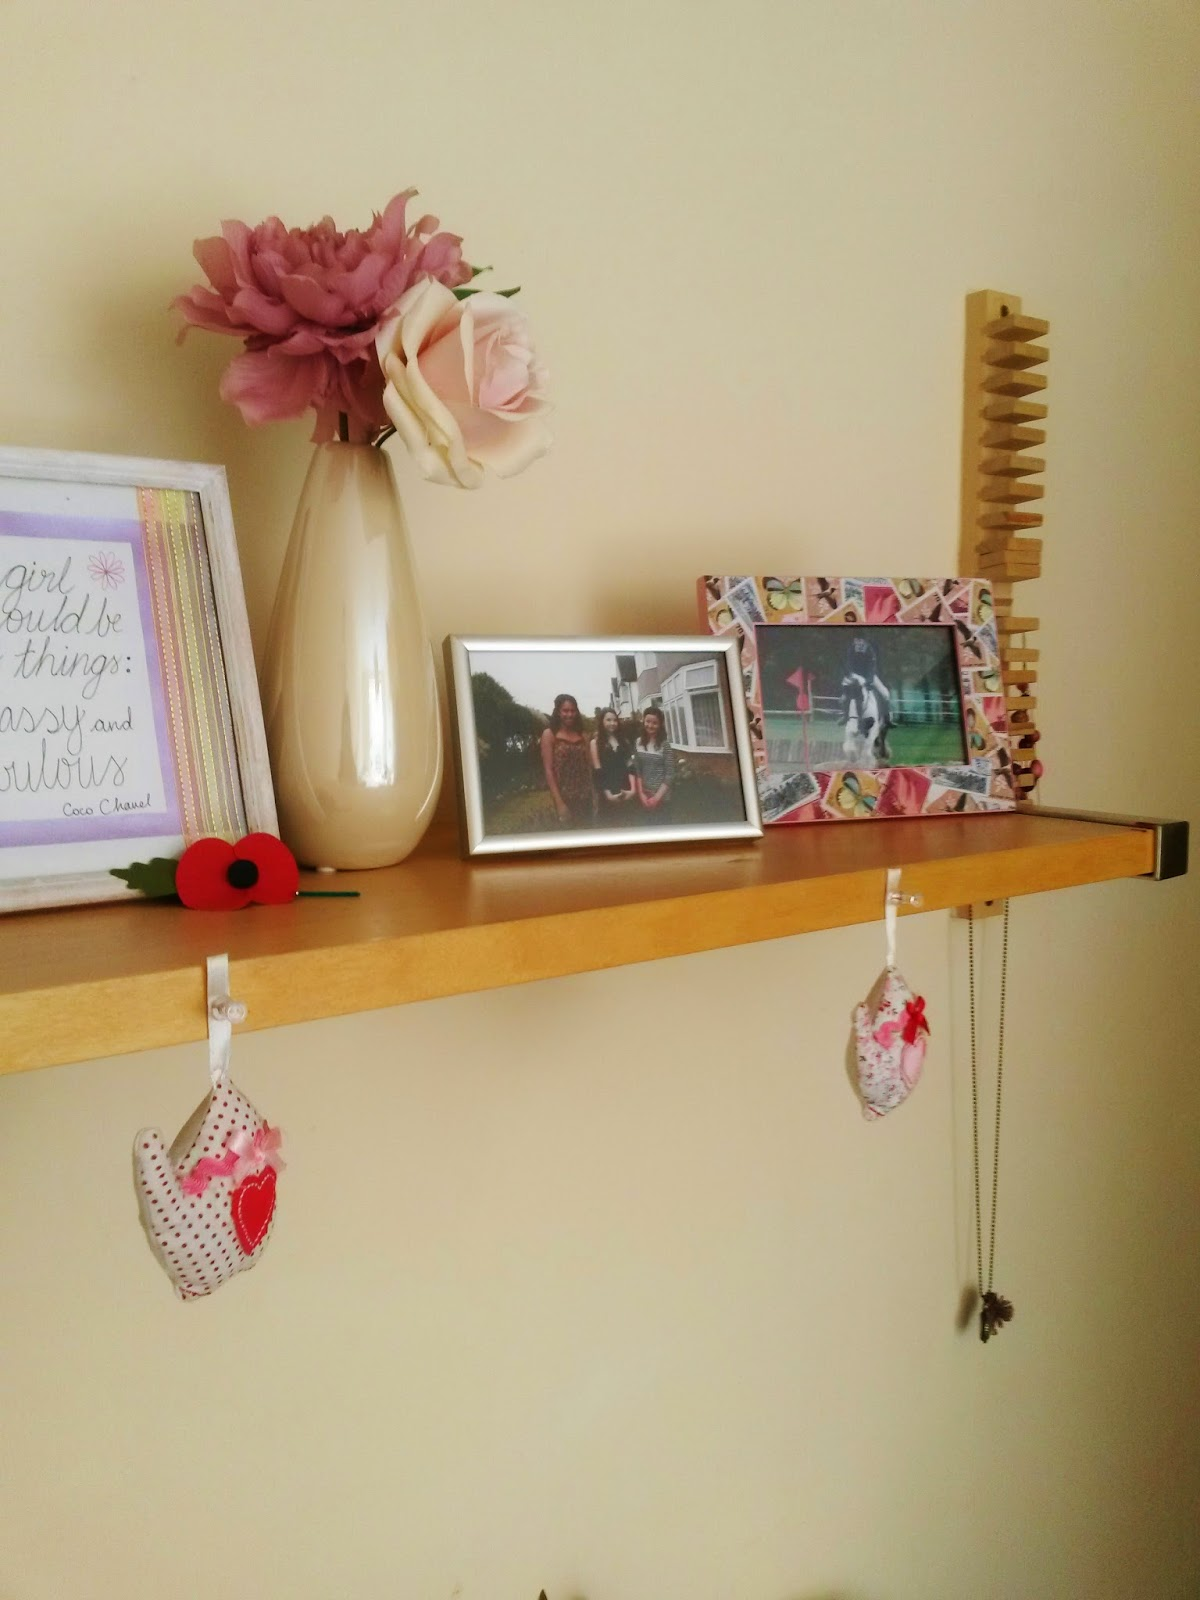 University bedroom photo frames on shelf